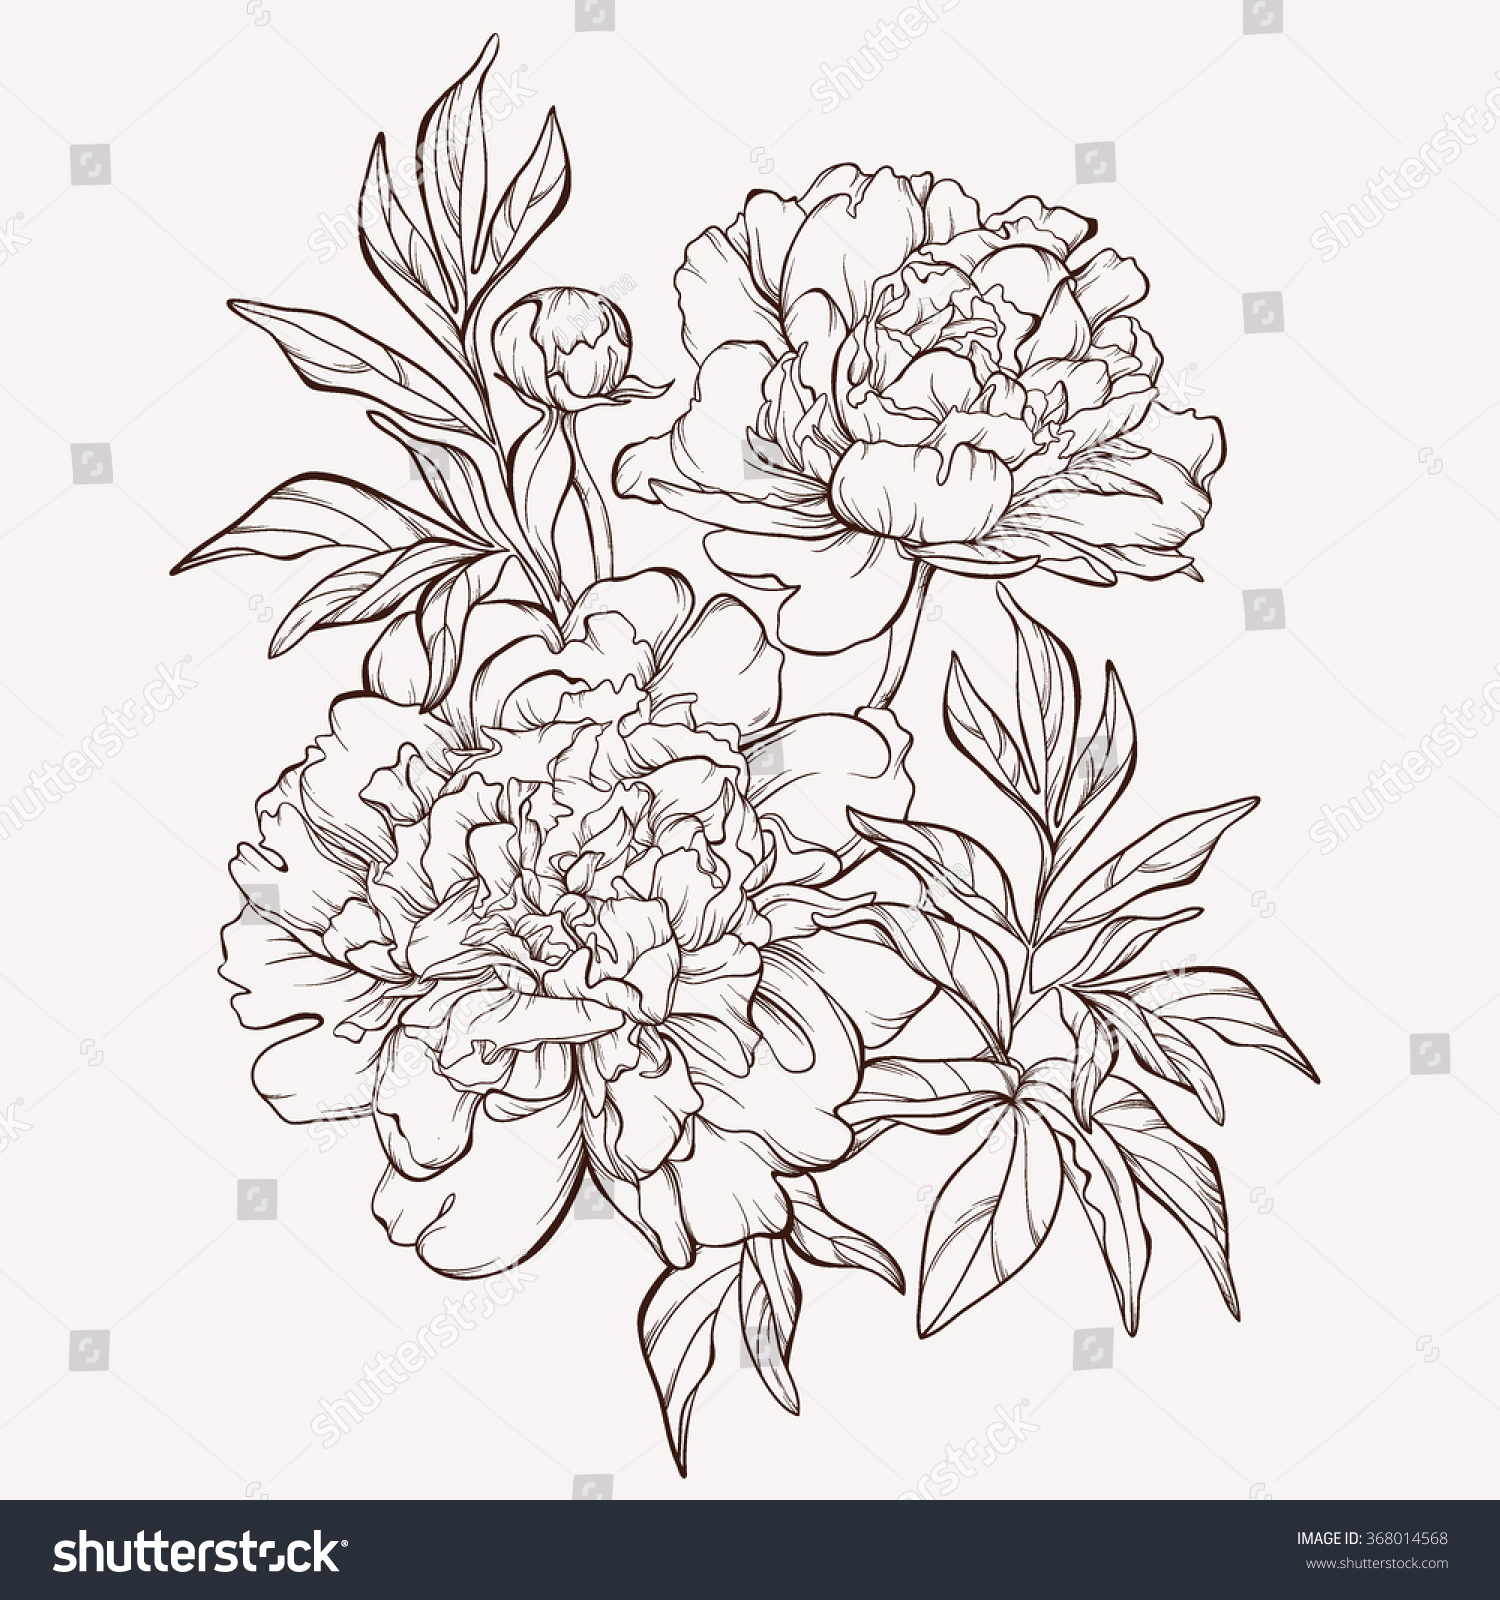 Peony flower isolated on white stock vector 368014568 shutterstock - Vector Peony Flower Isolated On White Background Element For Design Hand Drawn Contour